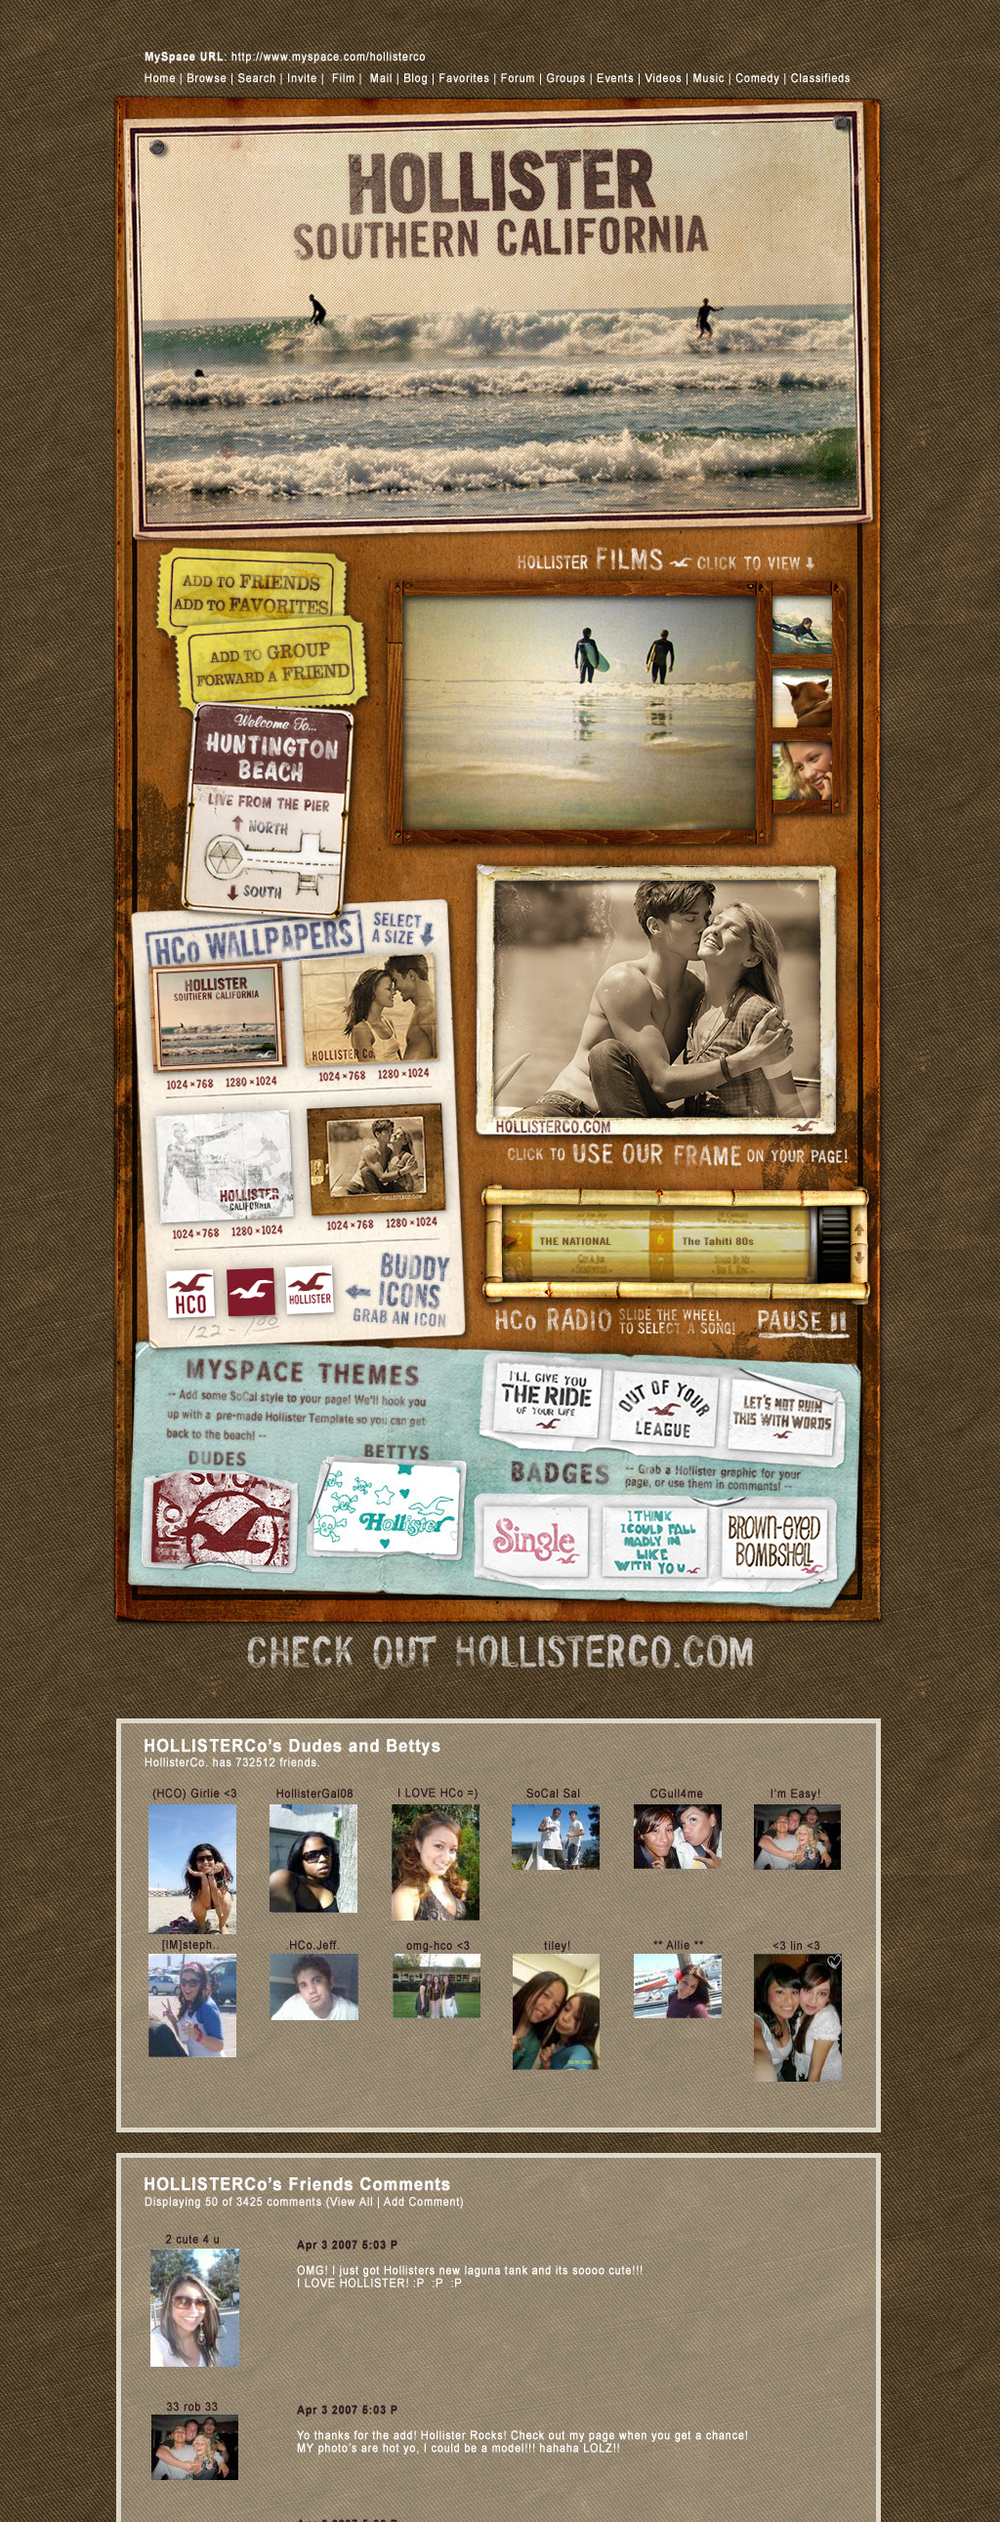 Hollister MySpace Layout -  2006 to 2008